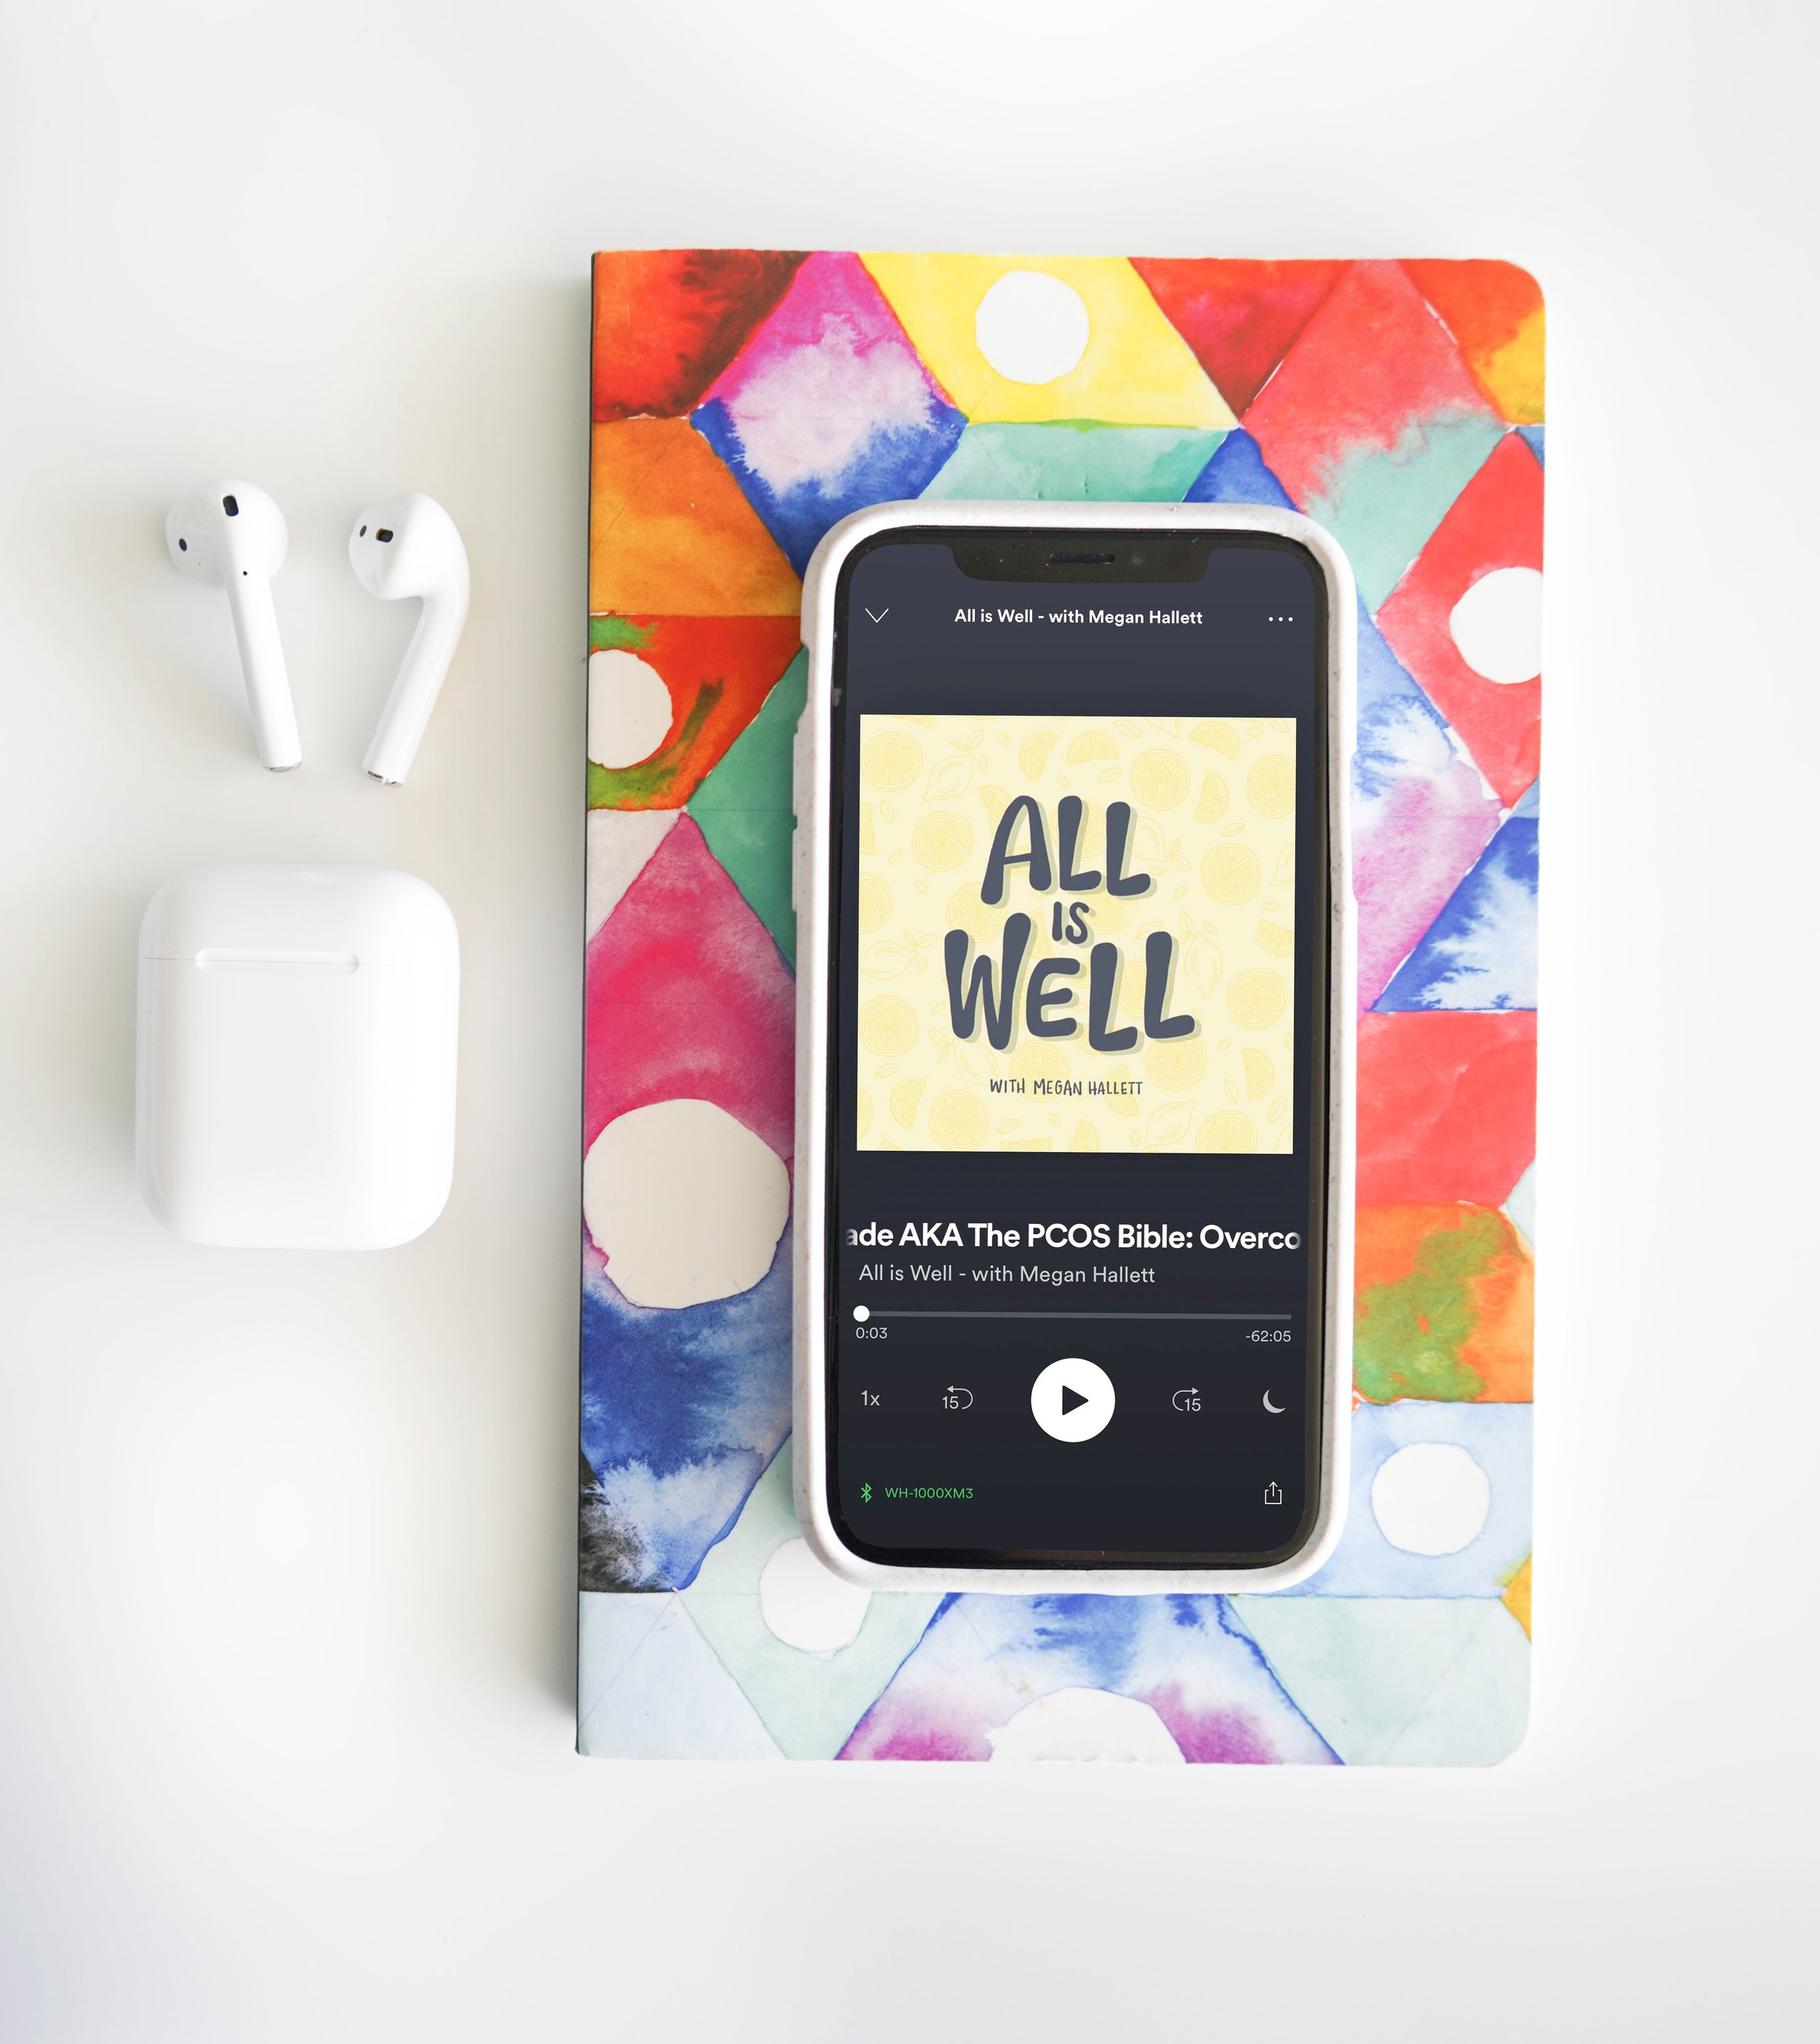 All is Well Podcast Cover - All is Well is a health and wellness podcast by Megan Hallett. She reached out to me via instagram to create a custom piece of art for her podcast cover and we worked together to make this cover. She wanted to incorporate a lemon drop background, inspired by one of my previous pieces, and incorporate my unique hand lettering style for the title. In the end, it was such a fun creative process and amazing to see my work live on Spotify!